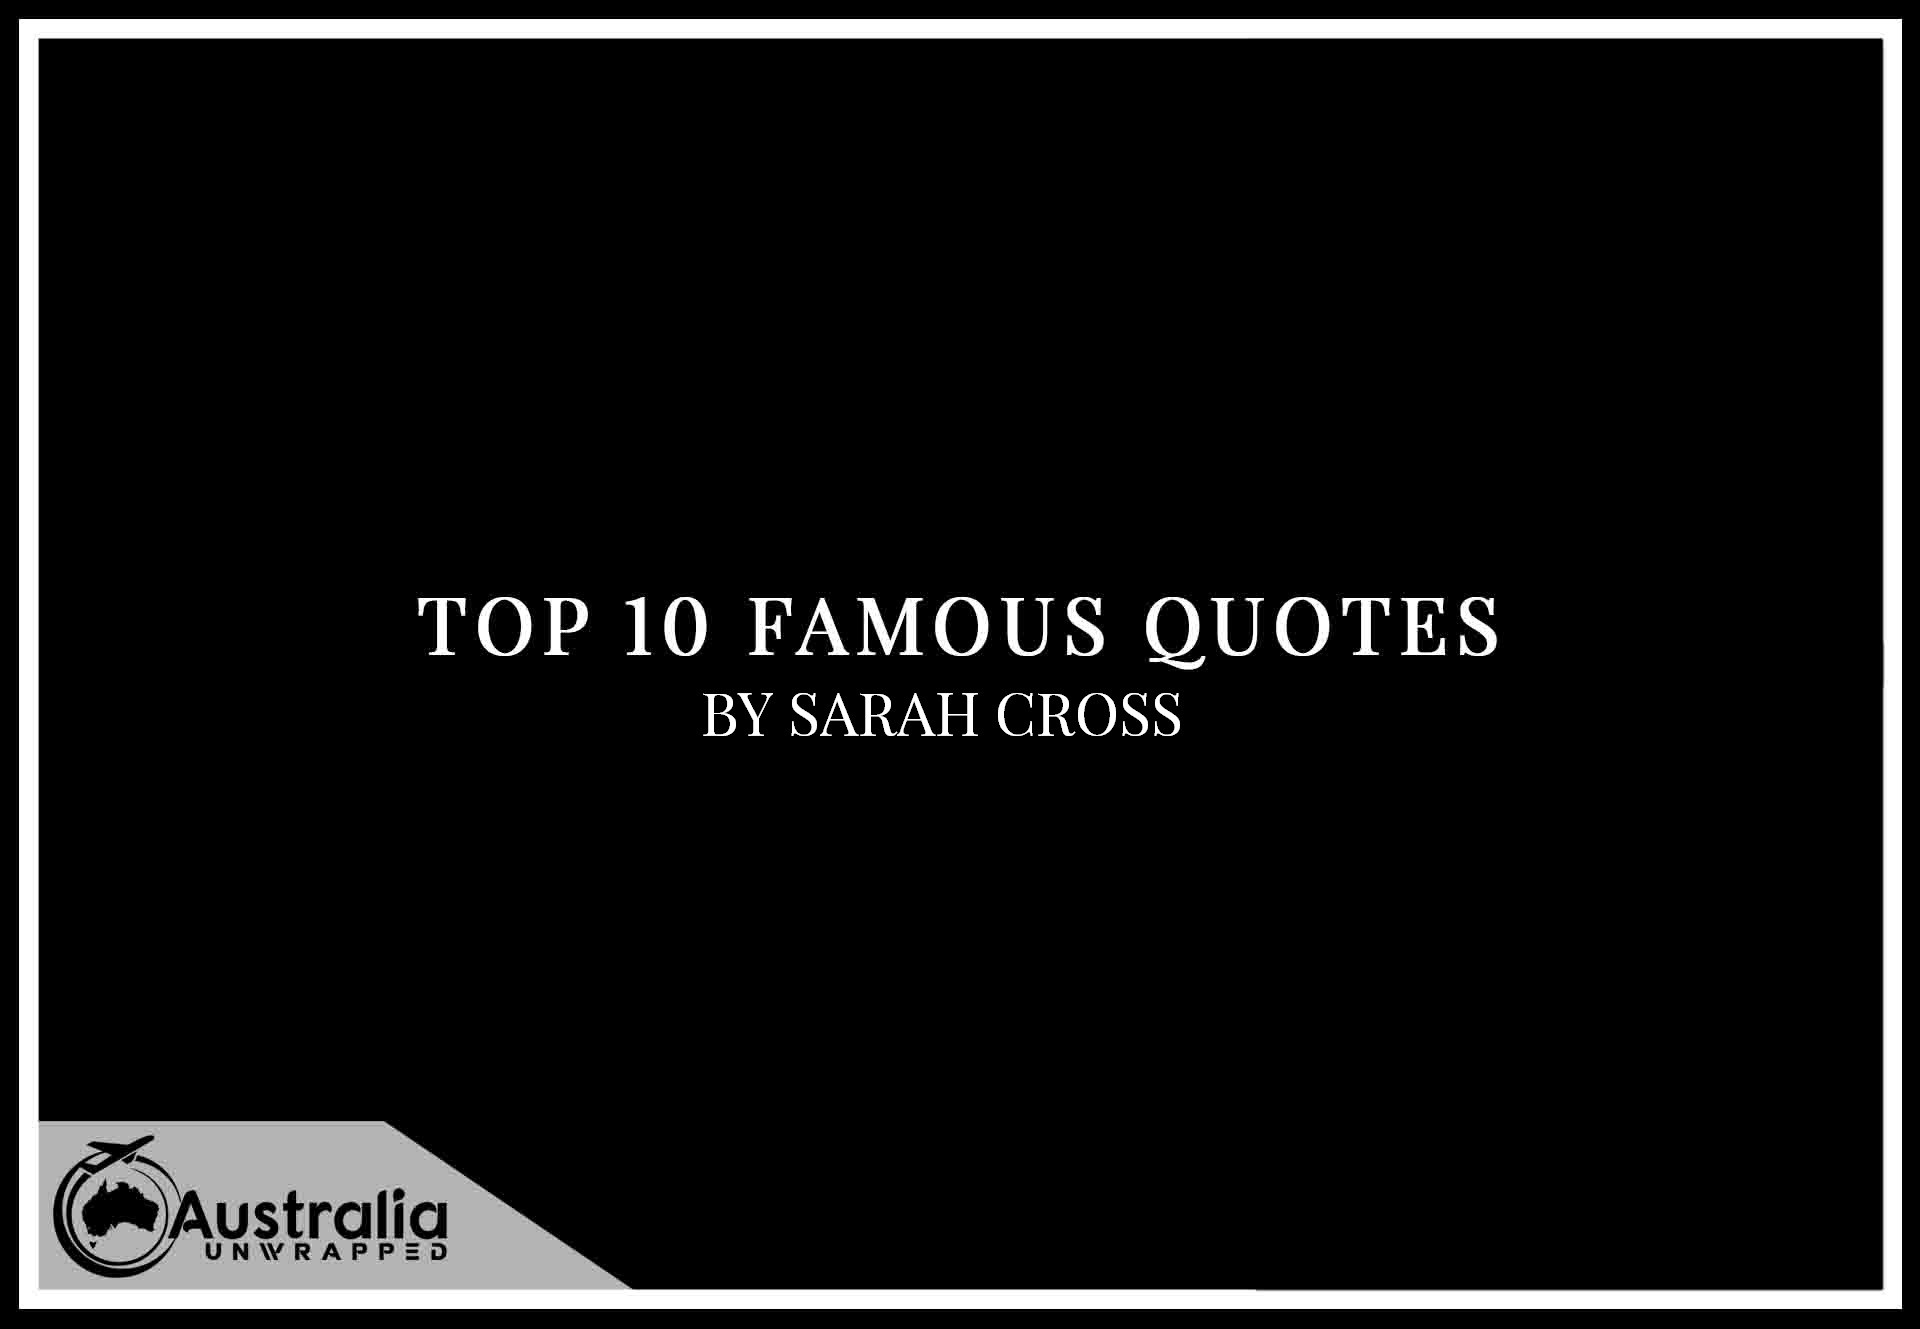 Top 10 Famous Quotes by Author Sarah Cross